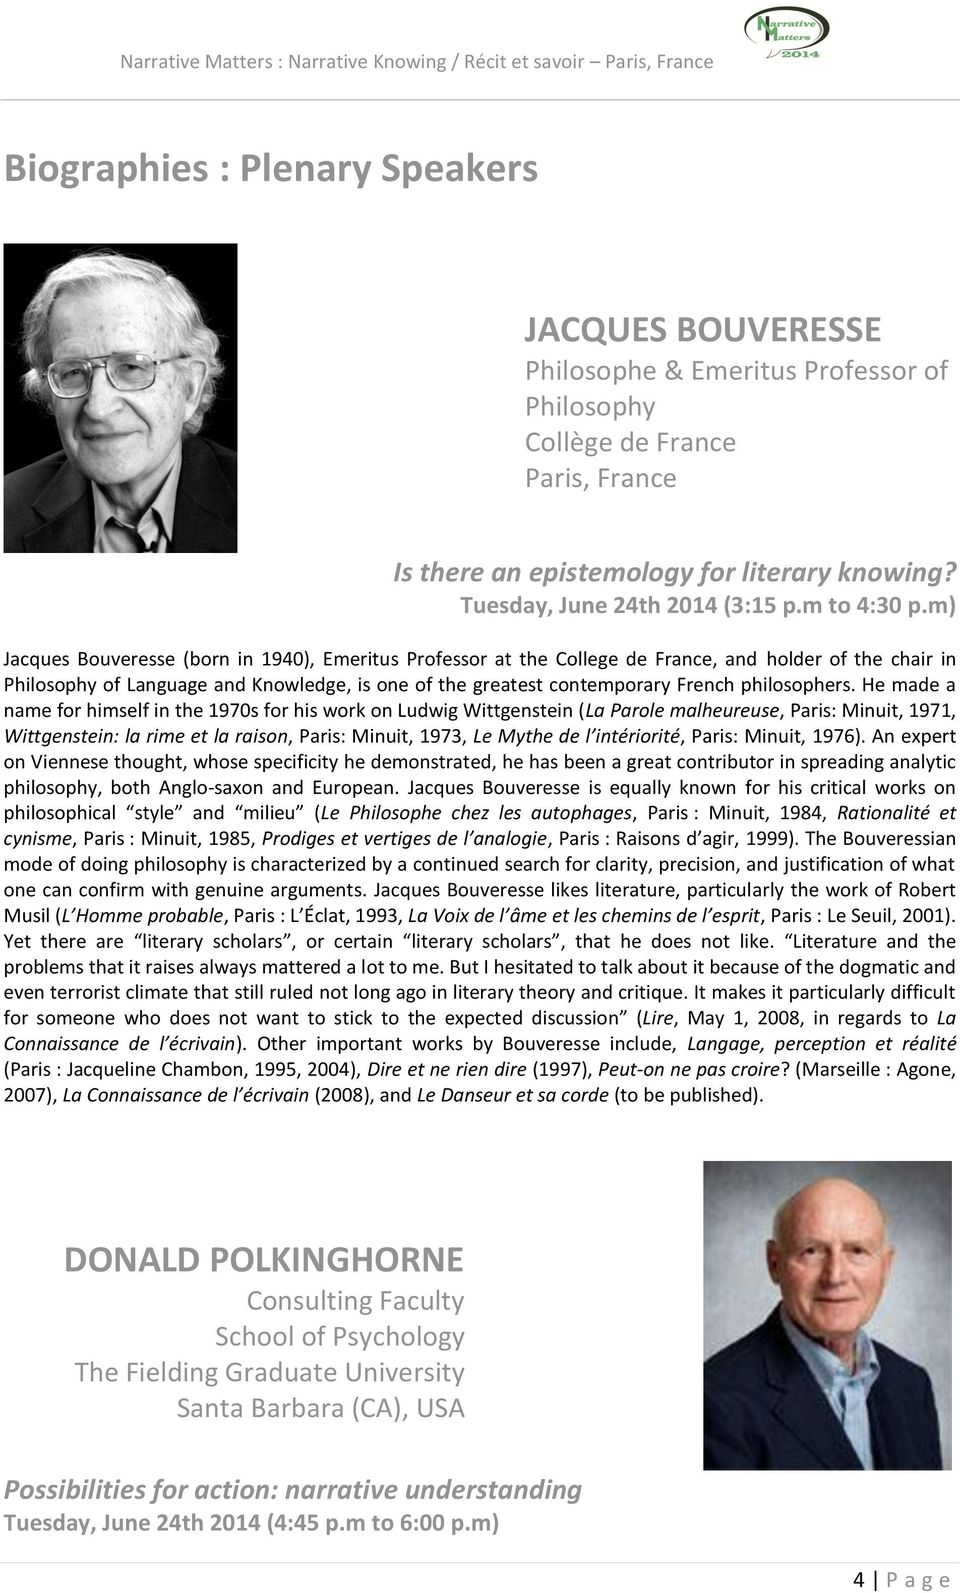 m) Jacques Bouveresse (born in 1940), Emeritus Professor at the College de France, and holder of the chair in Philosophy of Language and Knowledge, is one of the greatest contemporary French